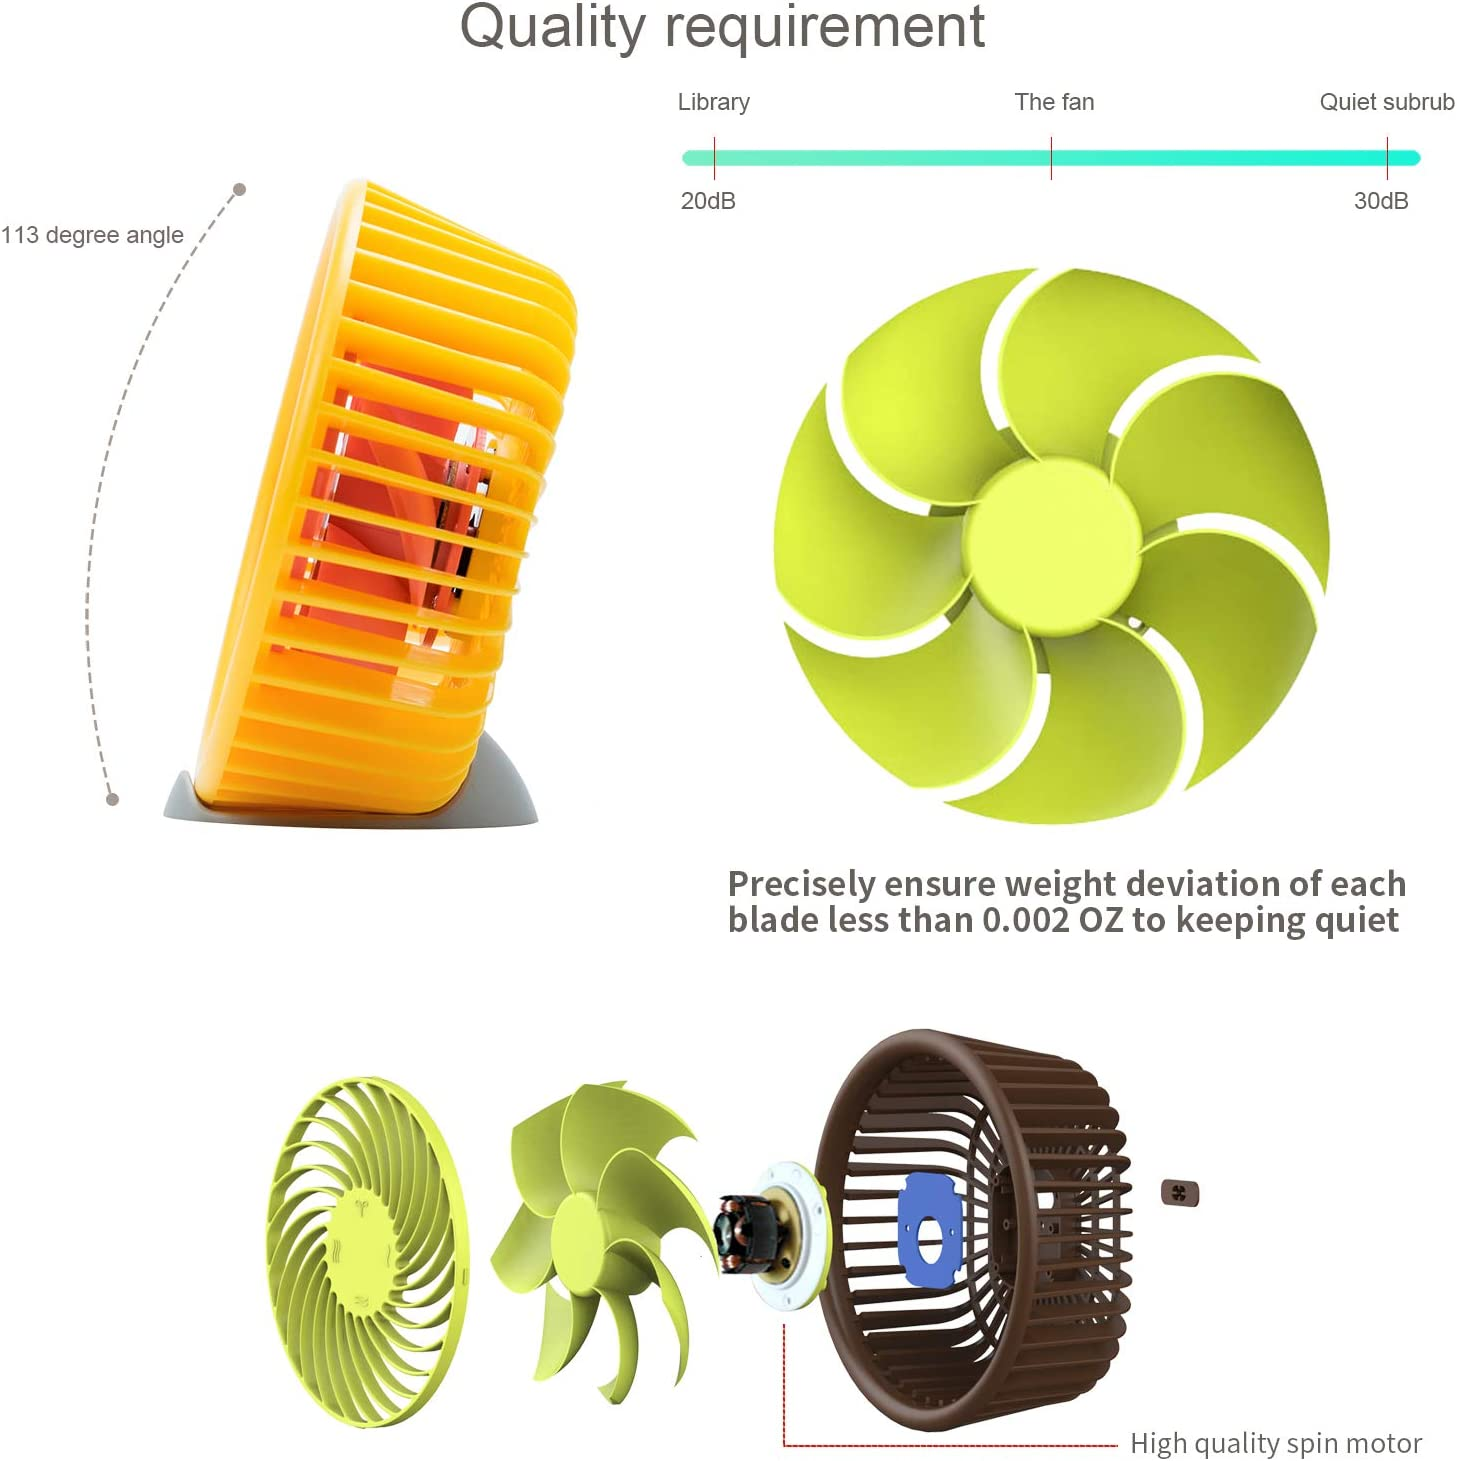 5 Inch Mini USB Desk Fan, 3 Speeds, Quiet Work Noise, USB Powered, Gravity Sensor Switch, 5 Foot Cable, Orange Fan For Home and Office